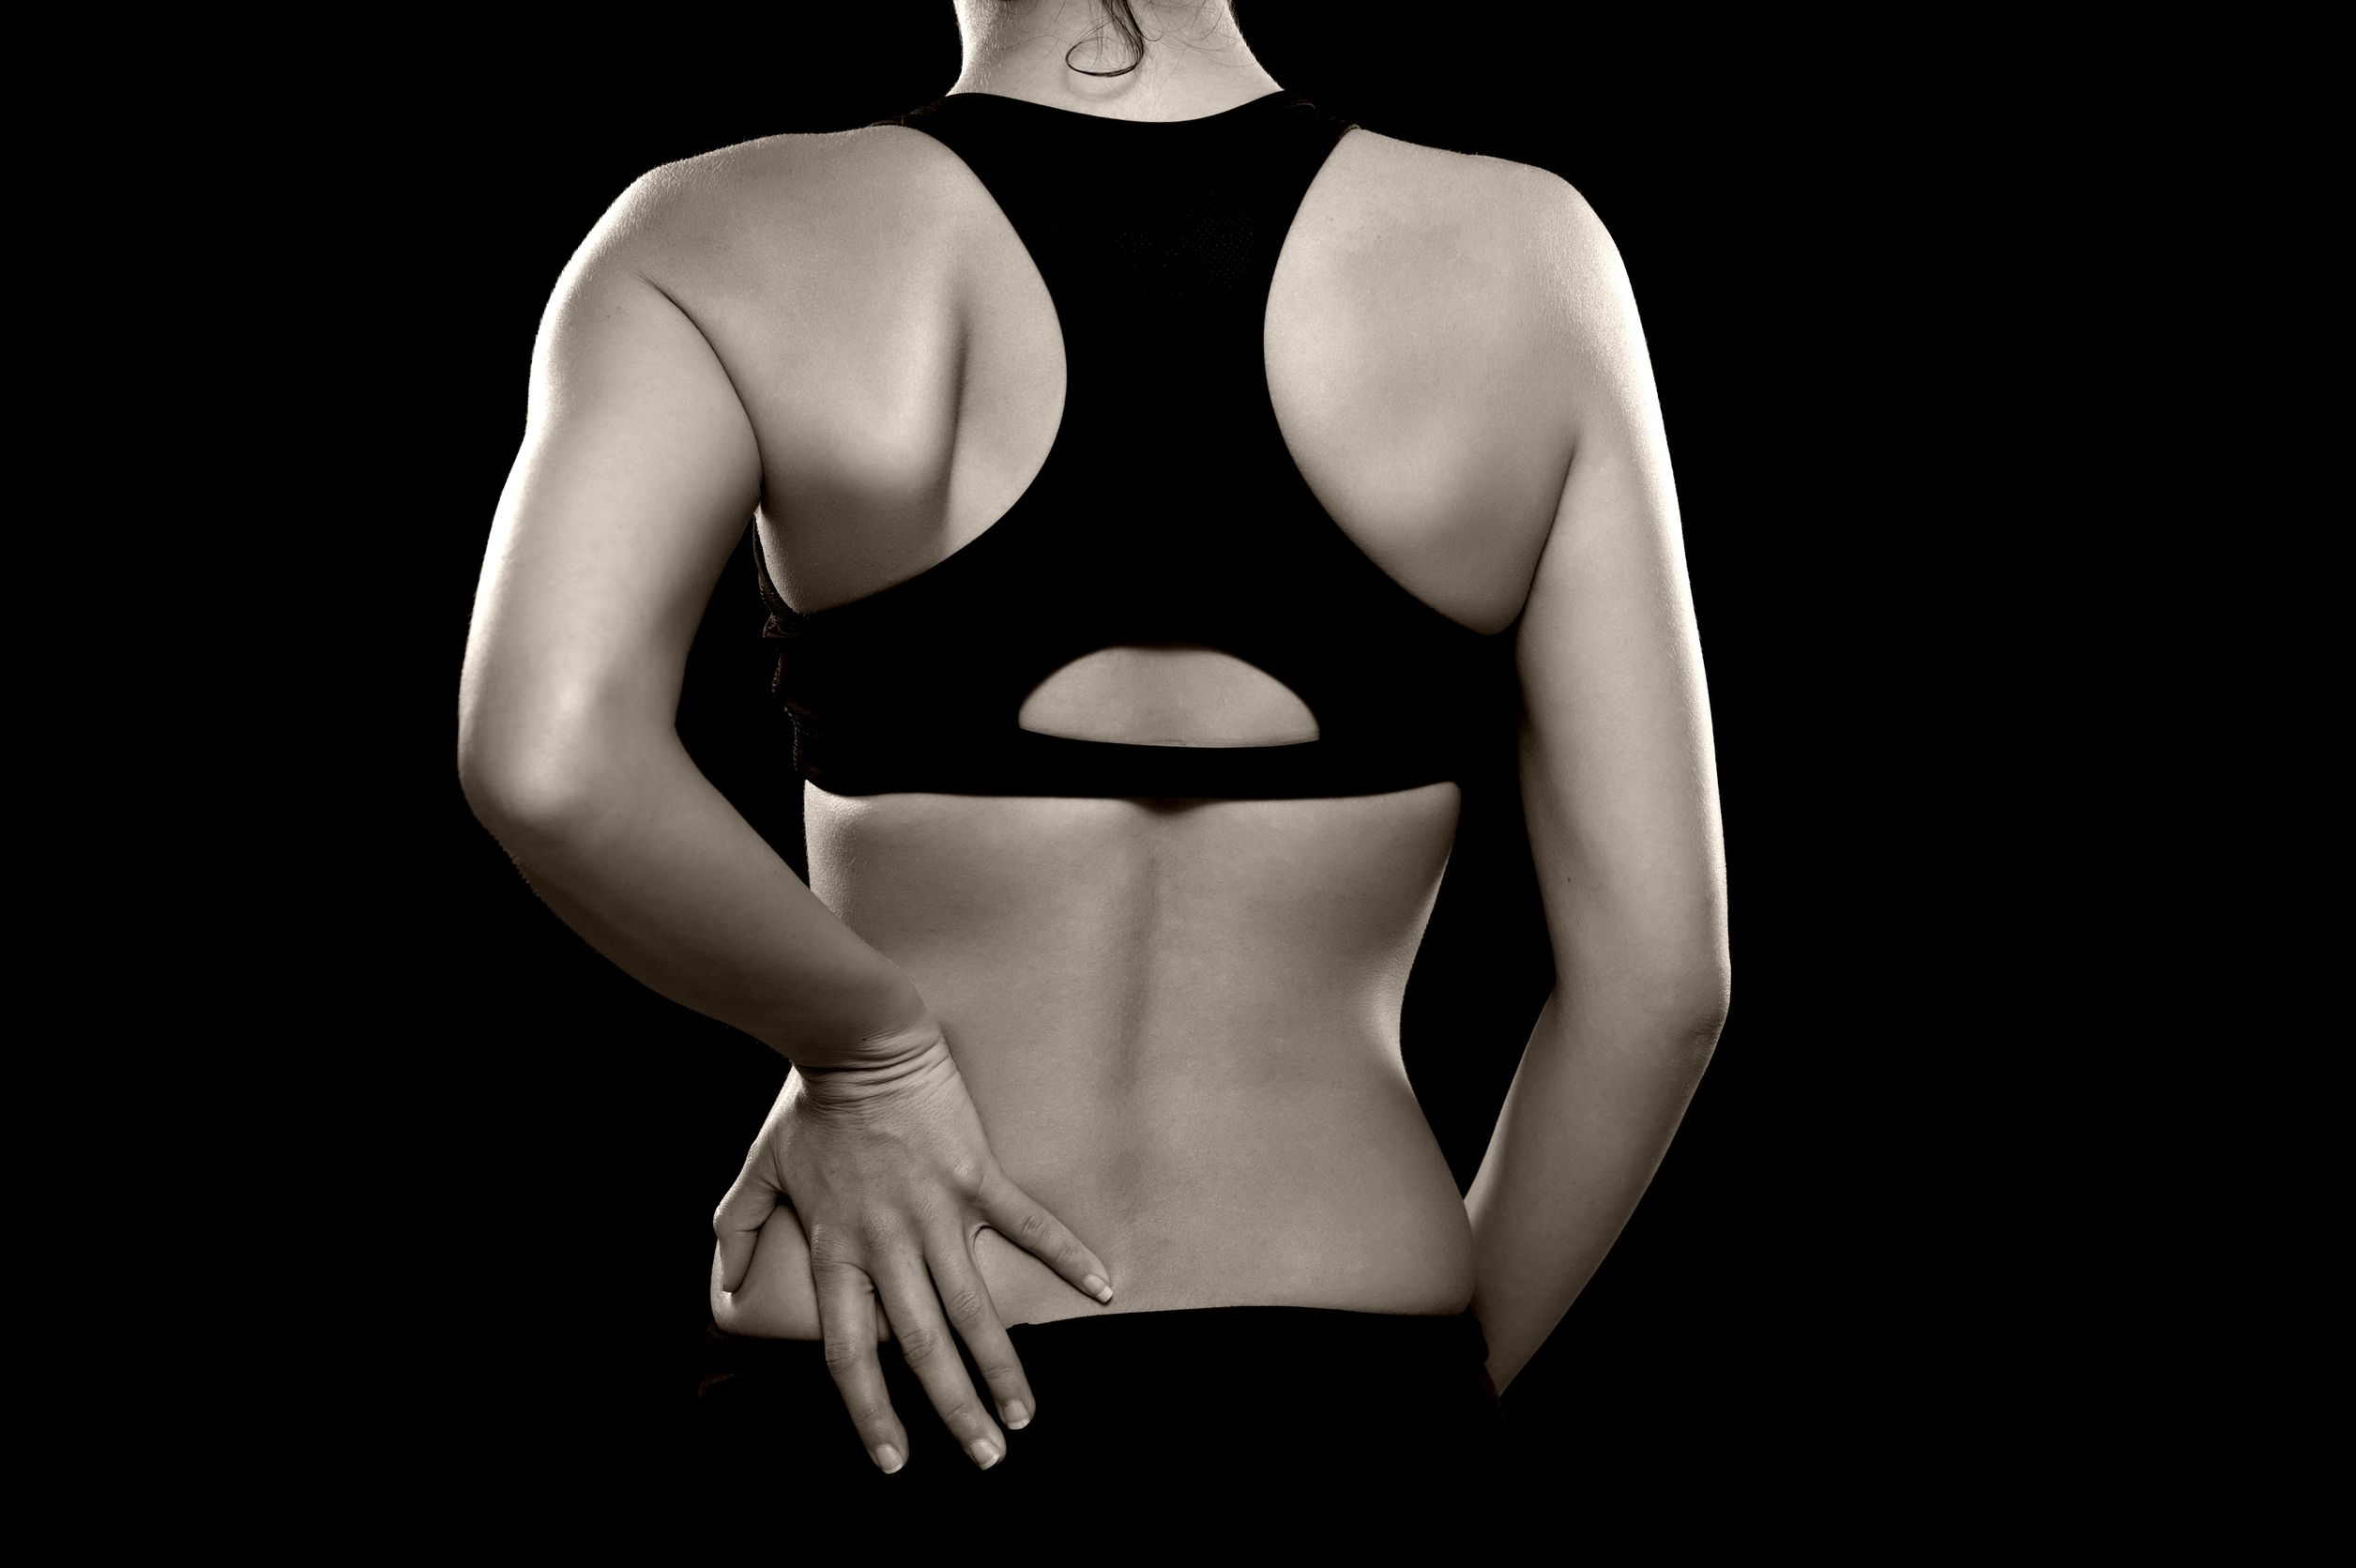 20494423 - a black and white photo of an athletic woman holding her lower back as if experiencing pain